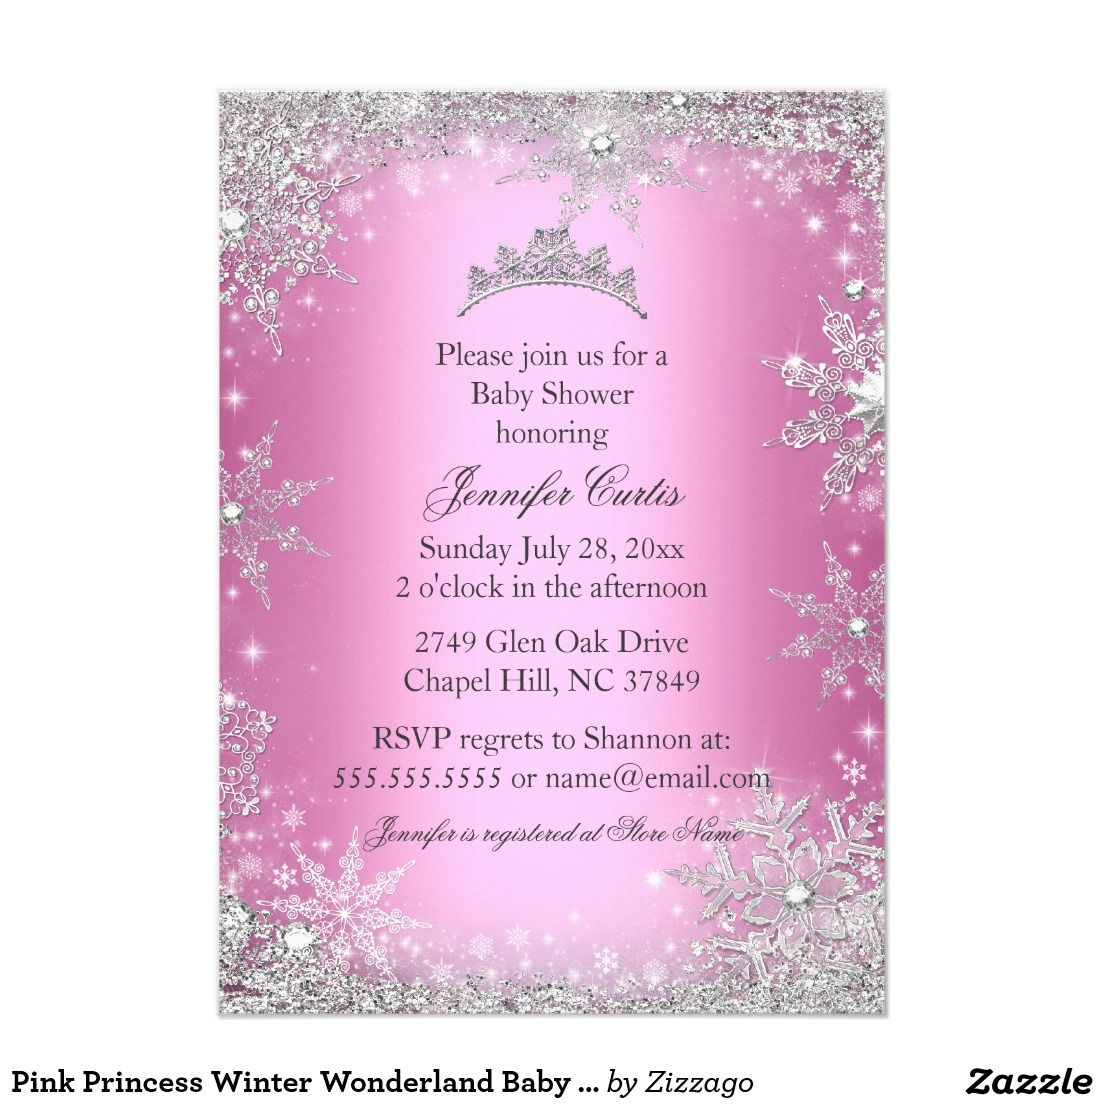 Pink Princess Winter Wonderland Baby Shower Invite | Pink princess ...